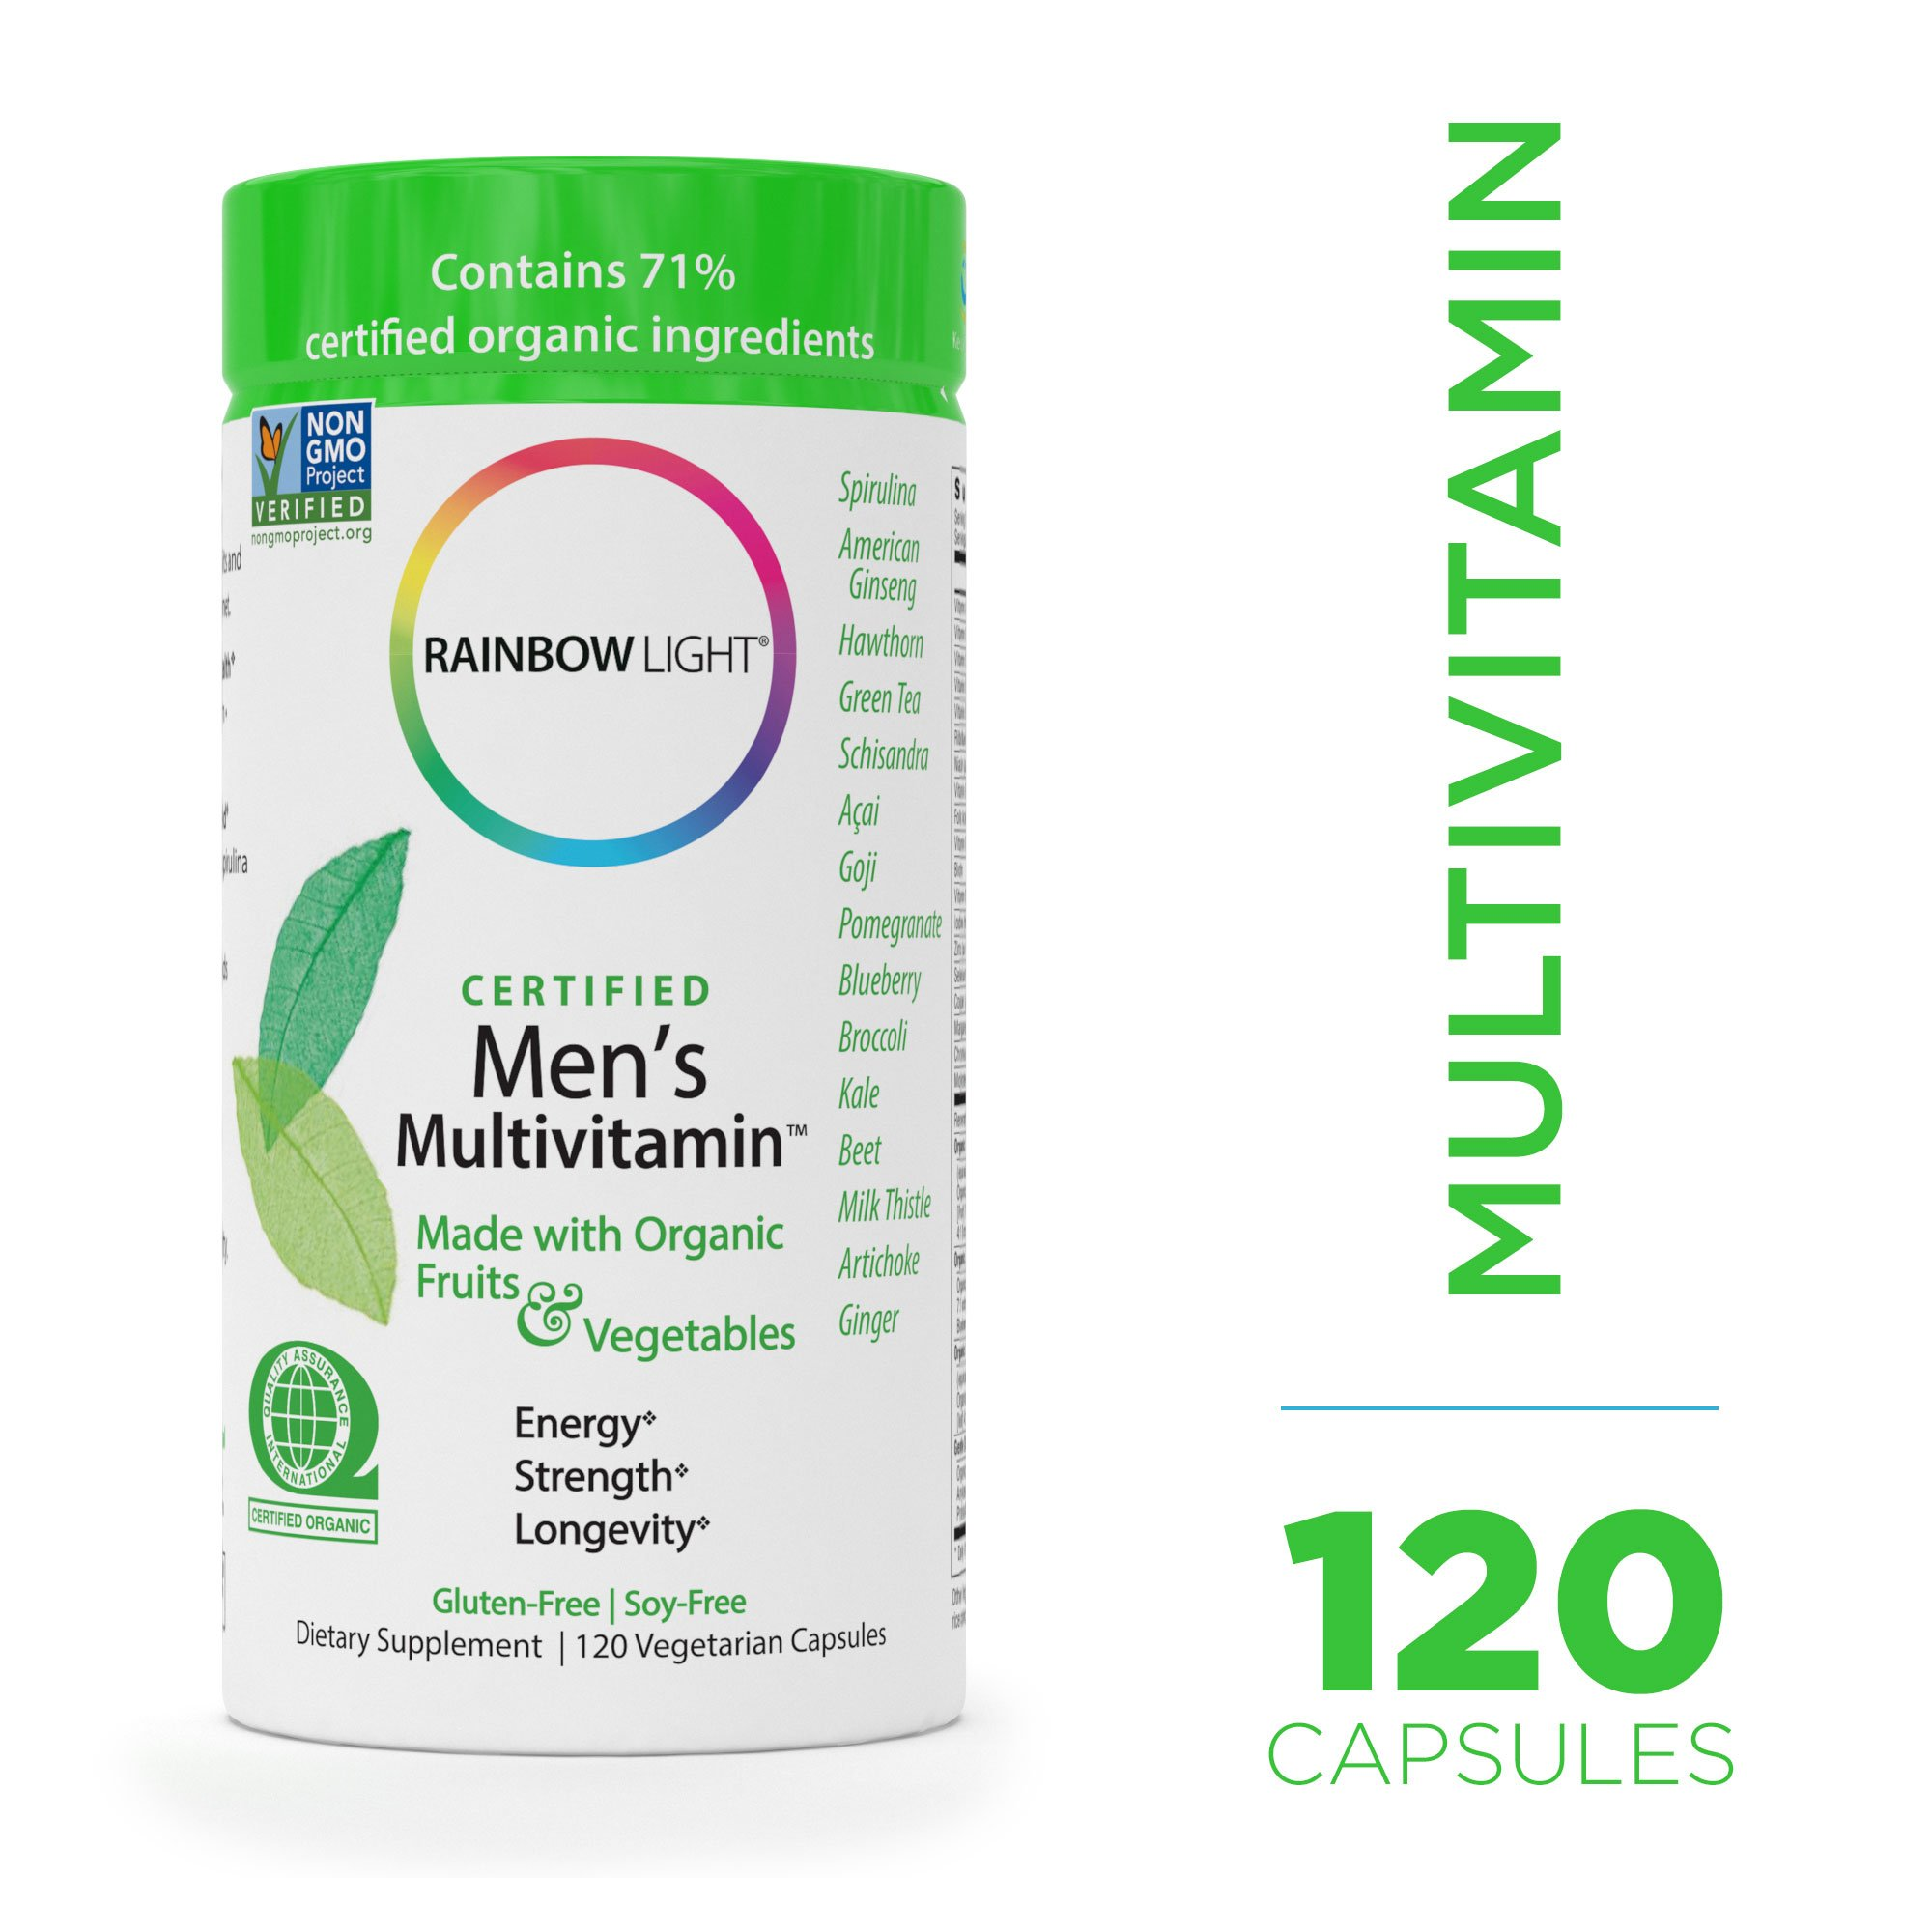 Rainbow Light - Certified Men's Multivitamin - Certified Organic, Provides Probiotic and Antioxidant Support, Supports Energy, Liver Health, and Digestion in Men; Gluten-Free - 120 vCaps